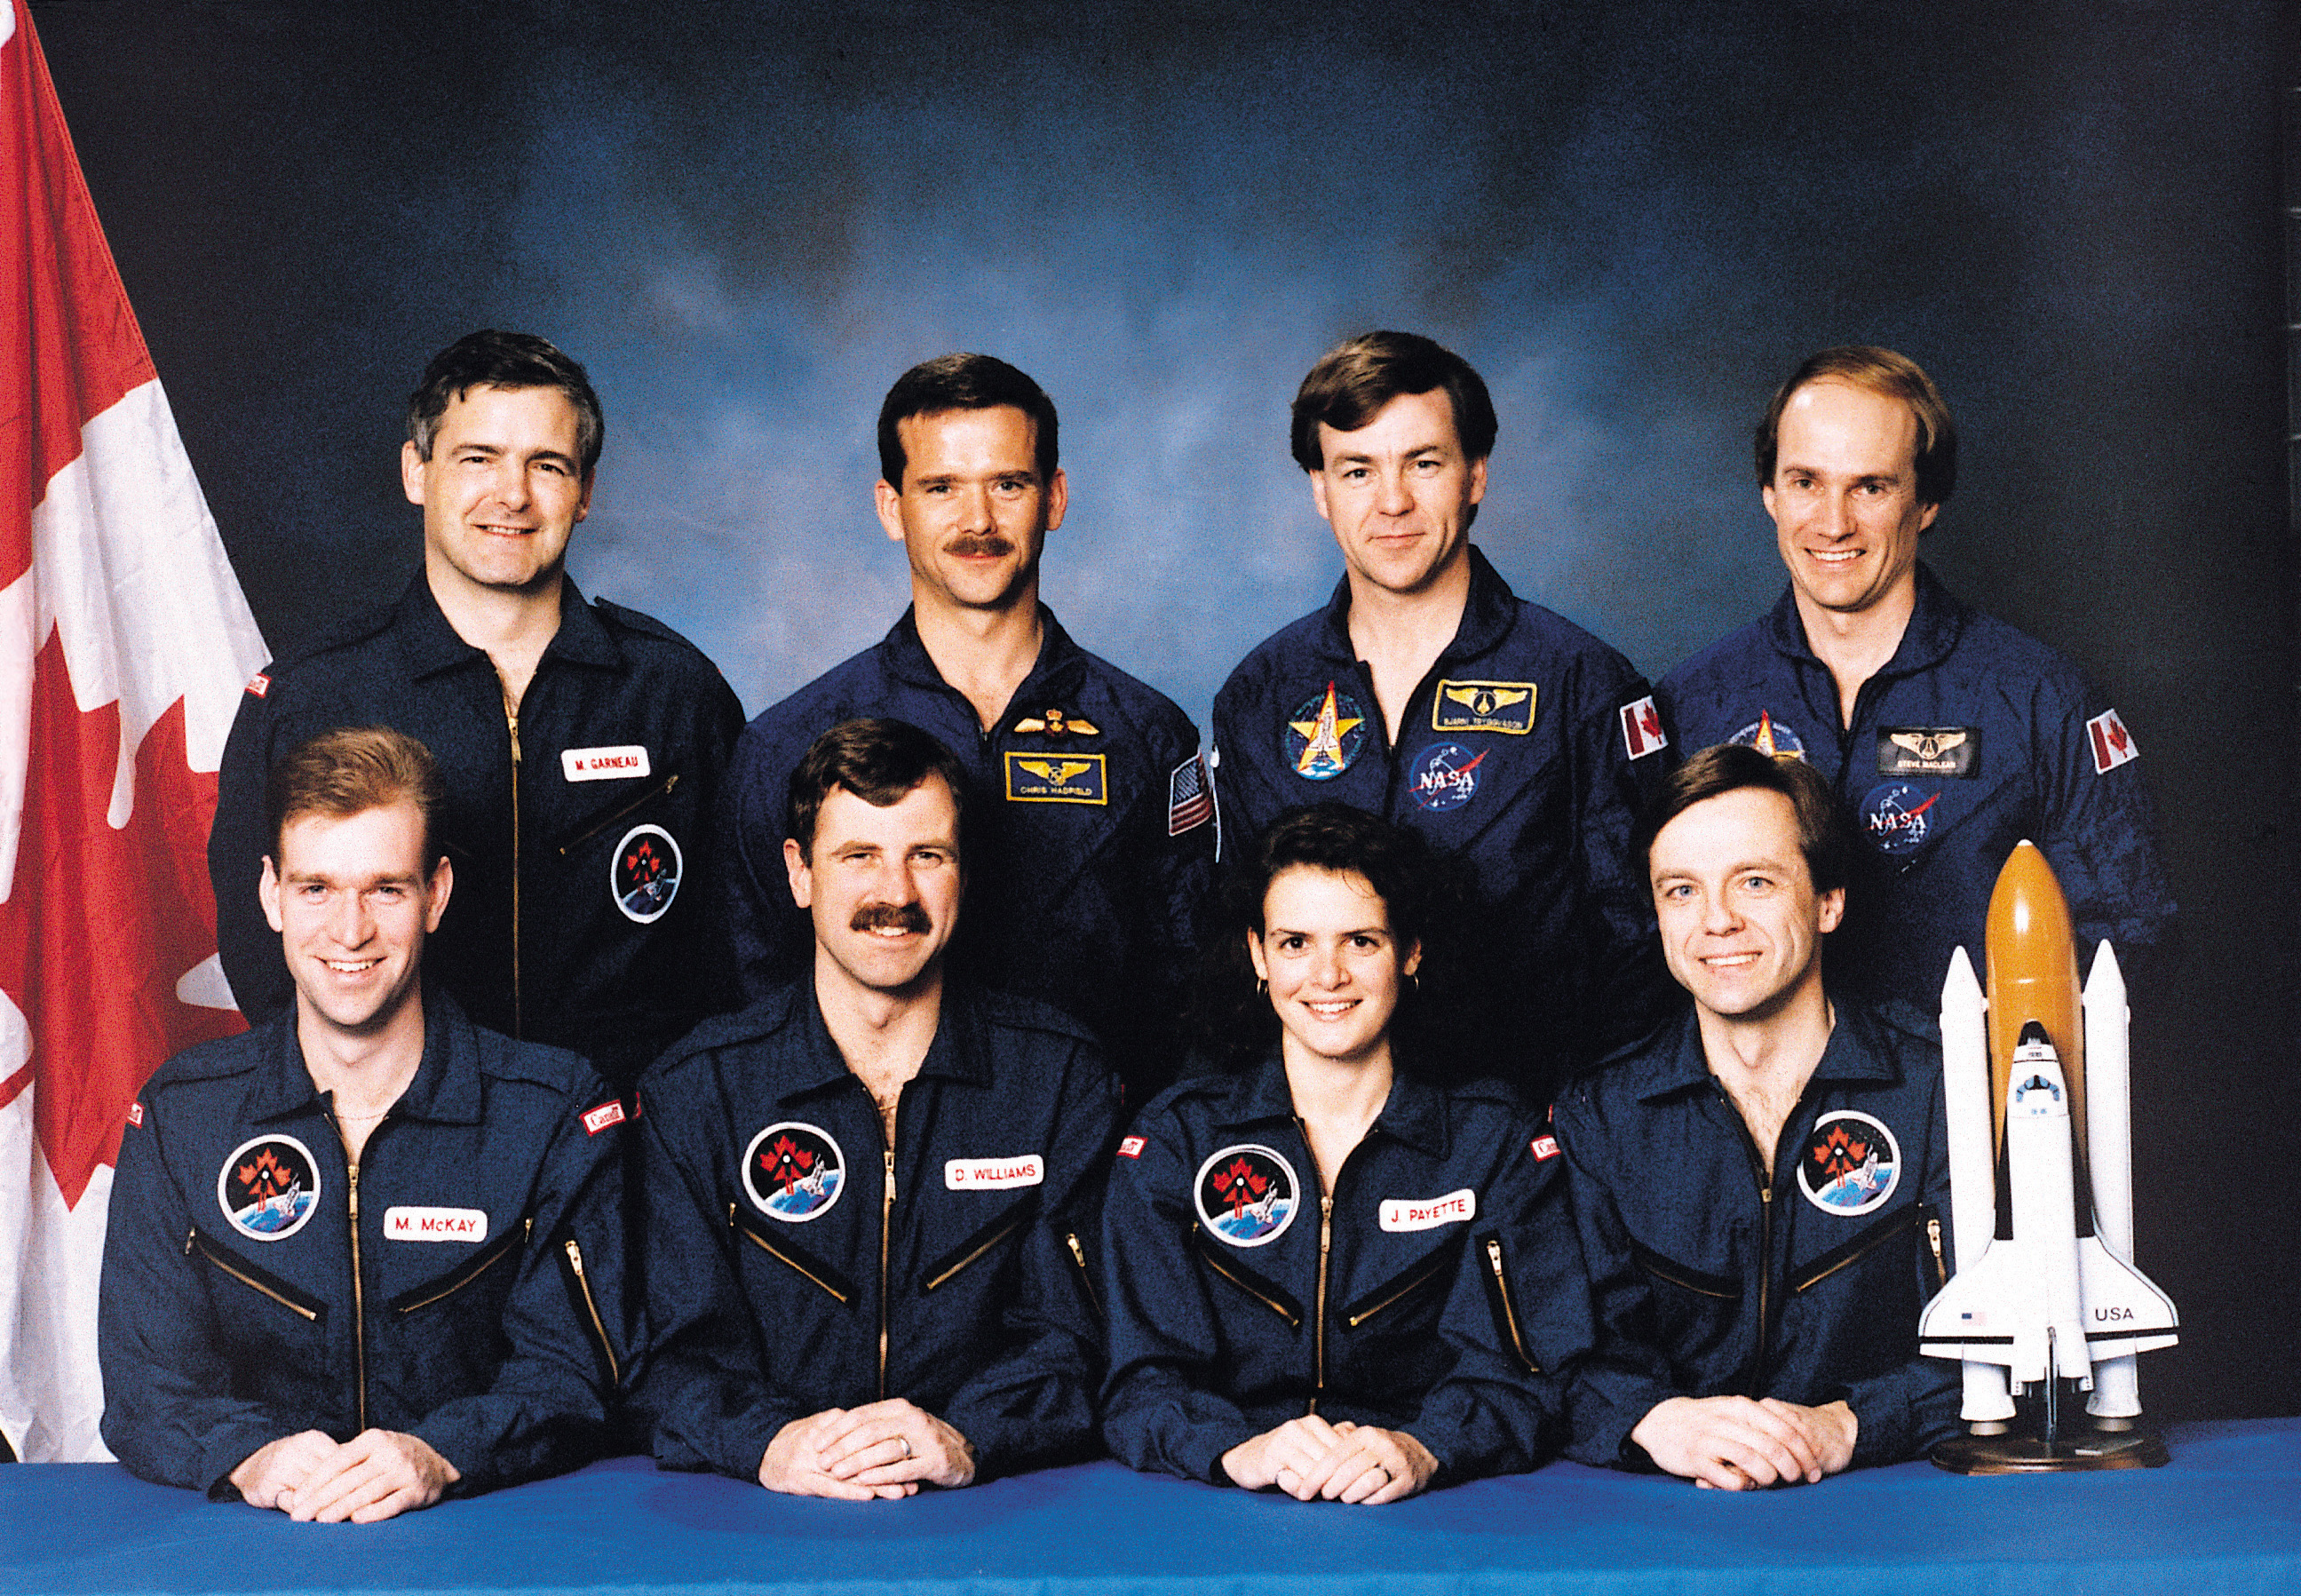 Canadian astronaut team, 1992